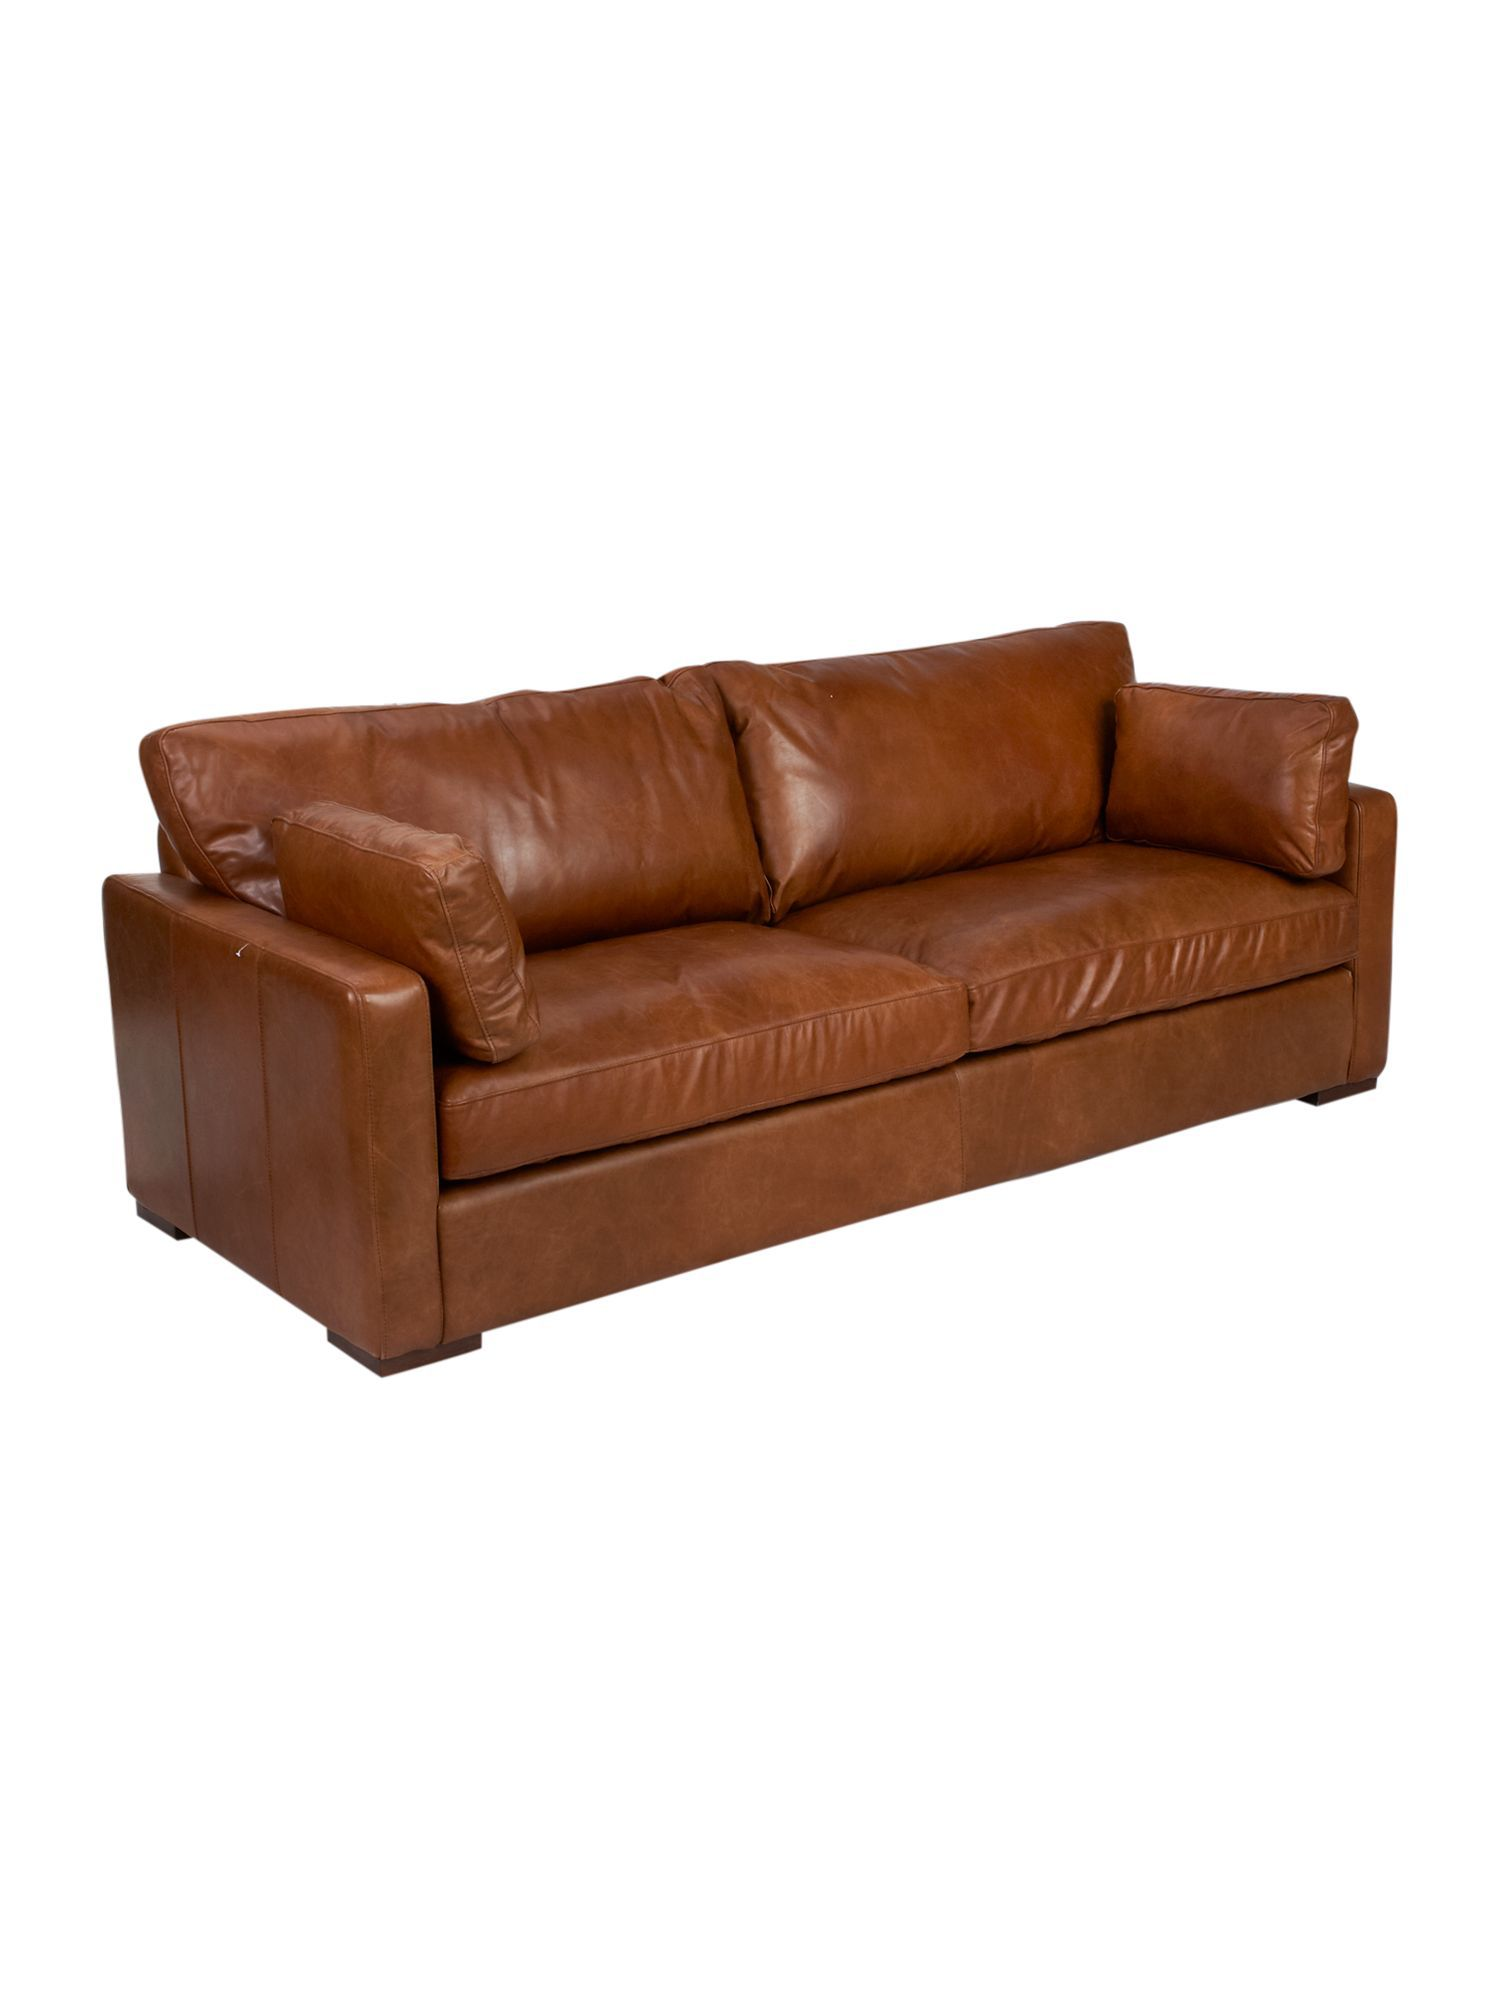 Idaho Large 3 Seater Sofa